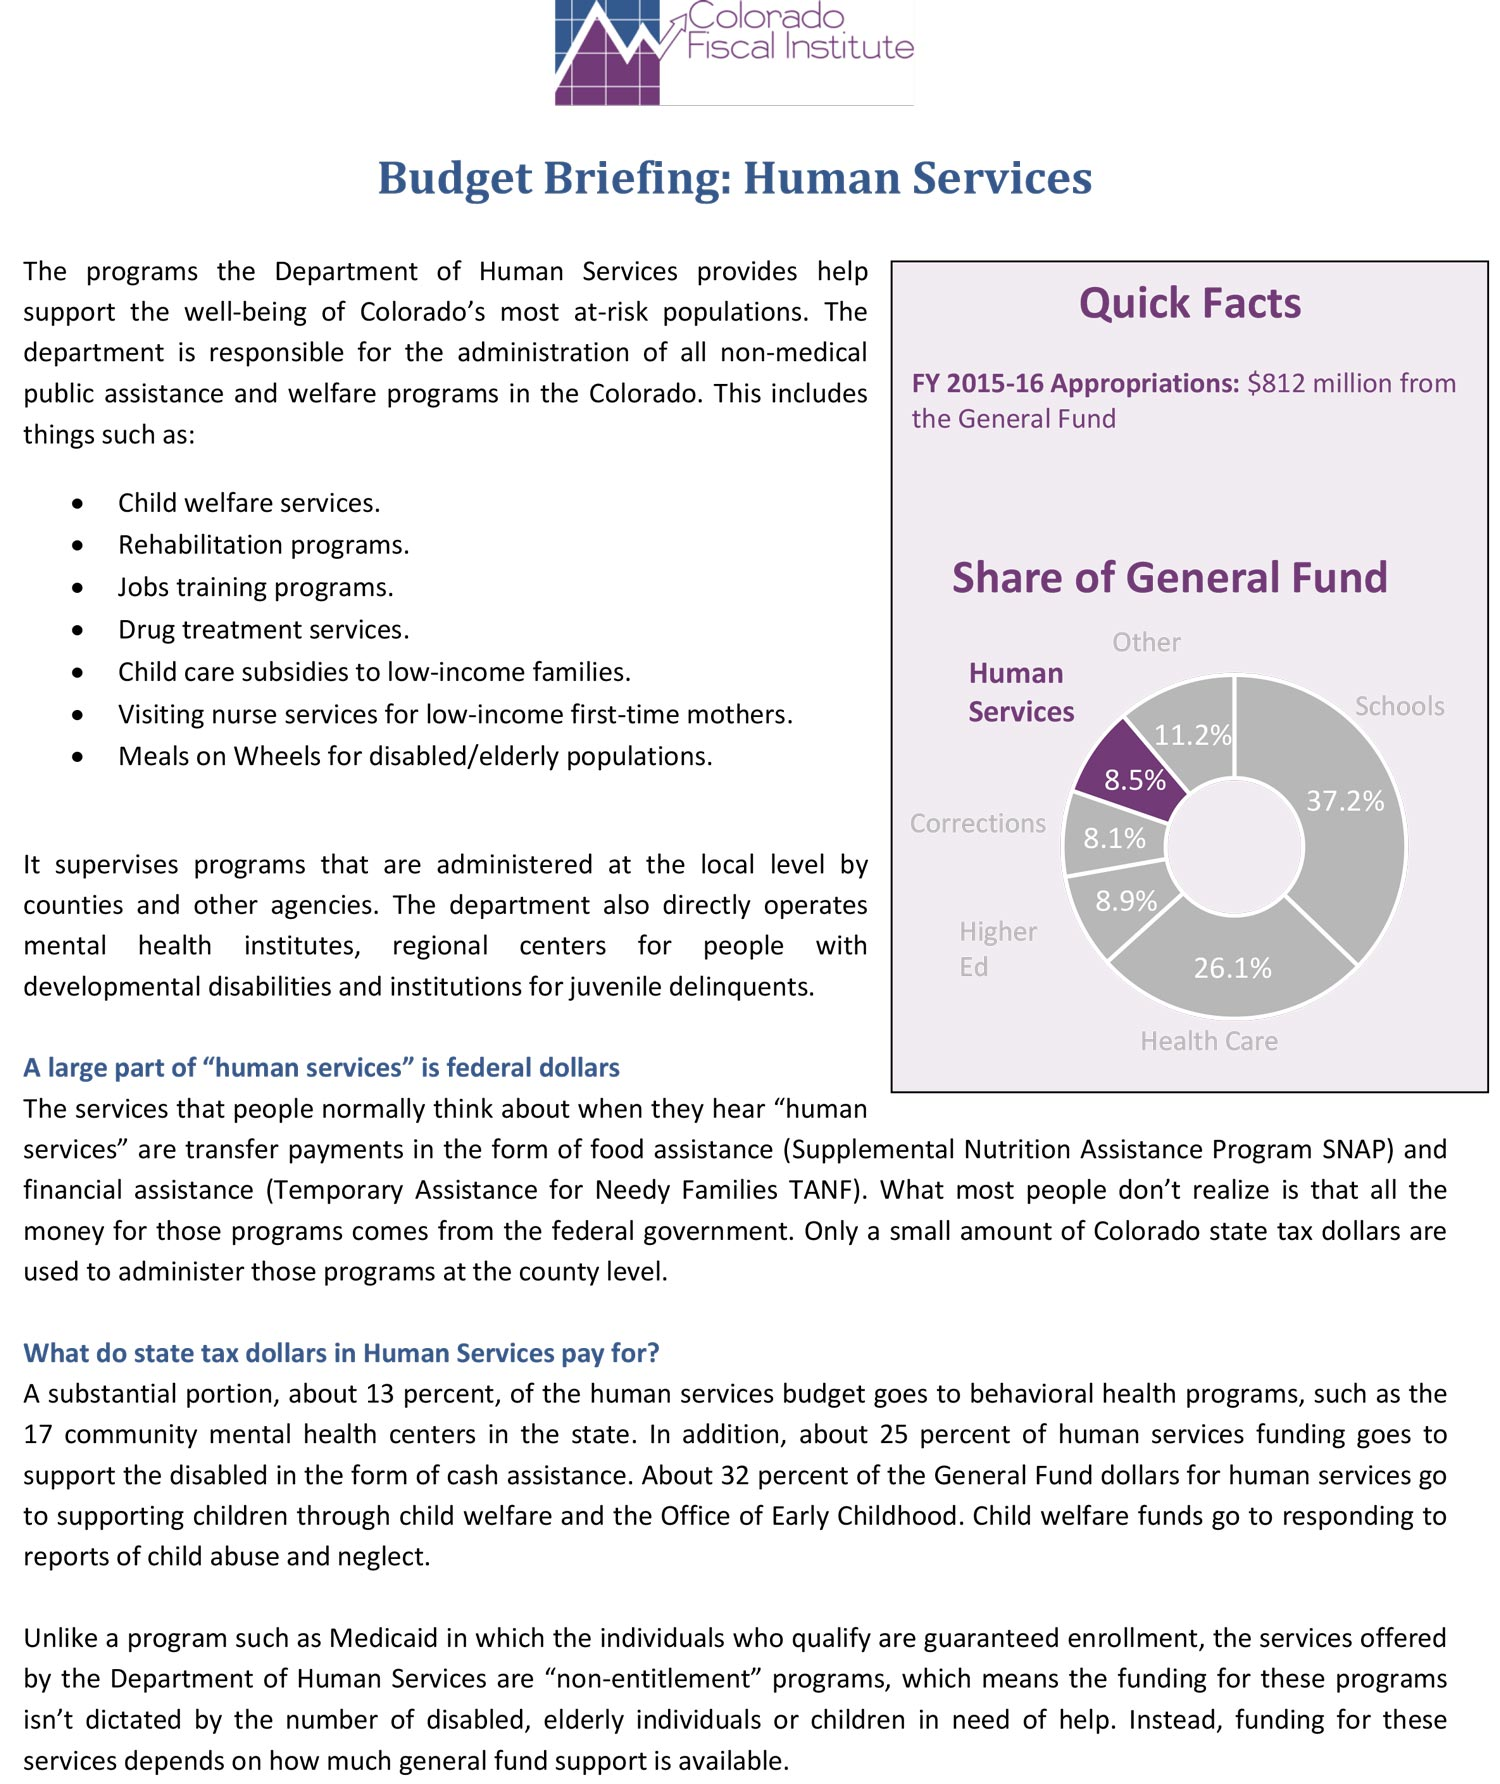 Budget Briefing: Human Services